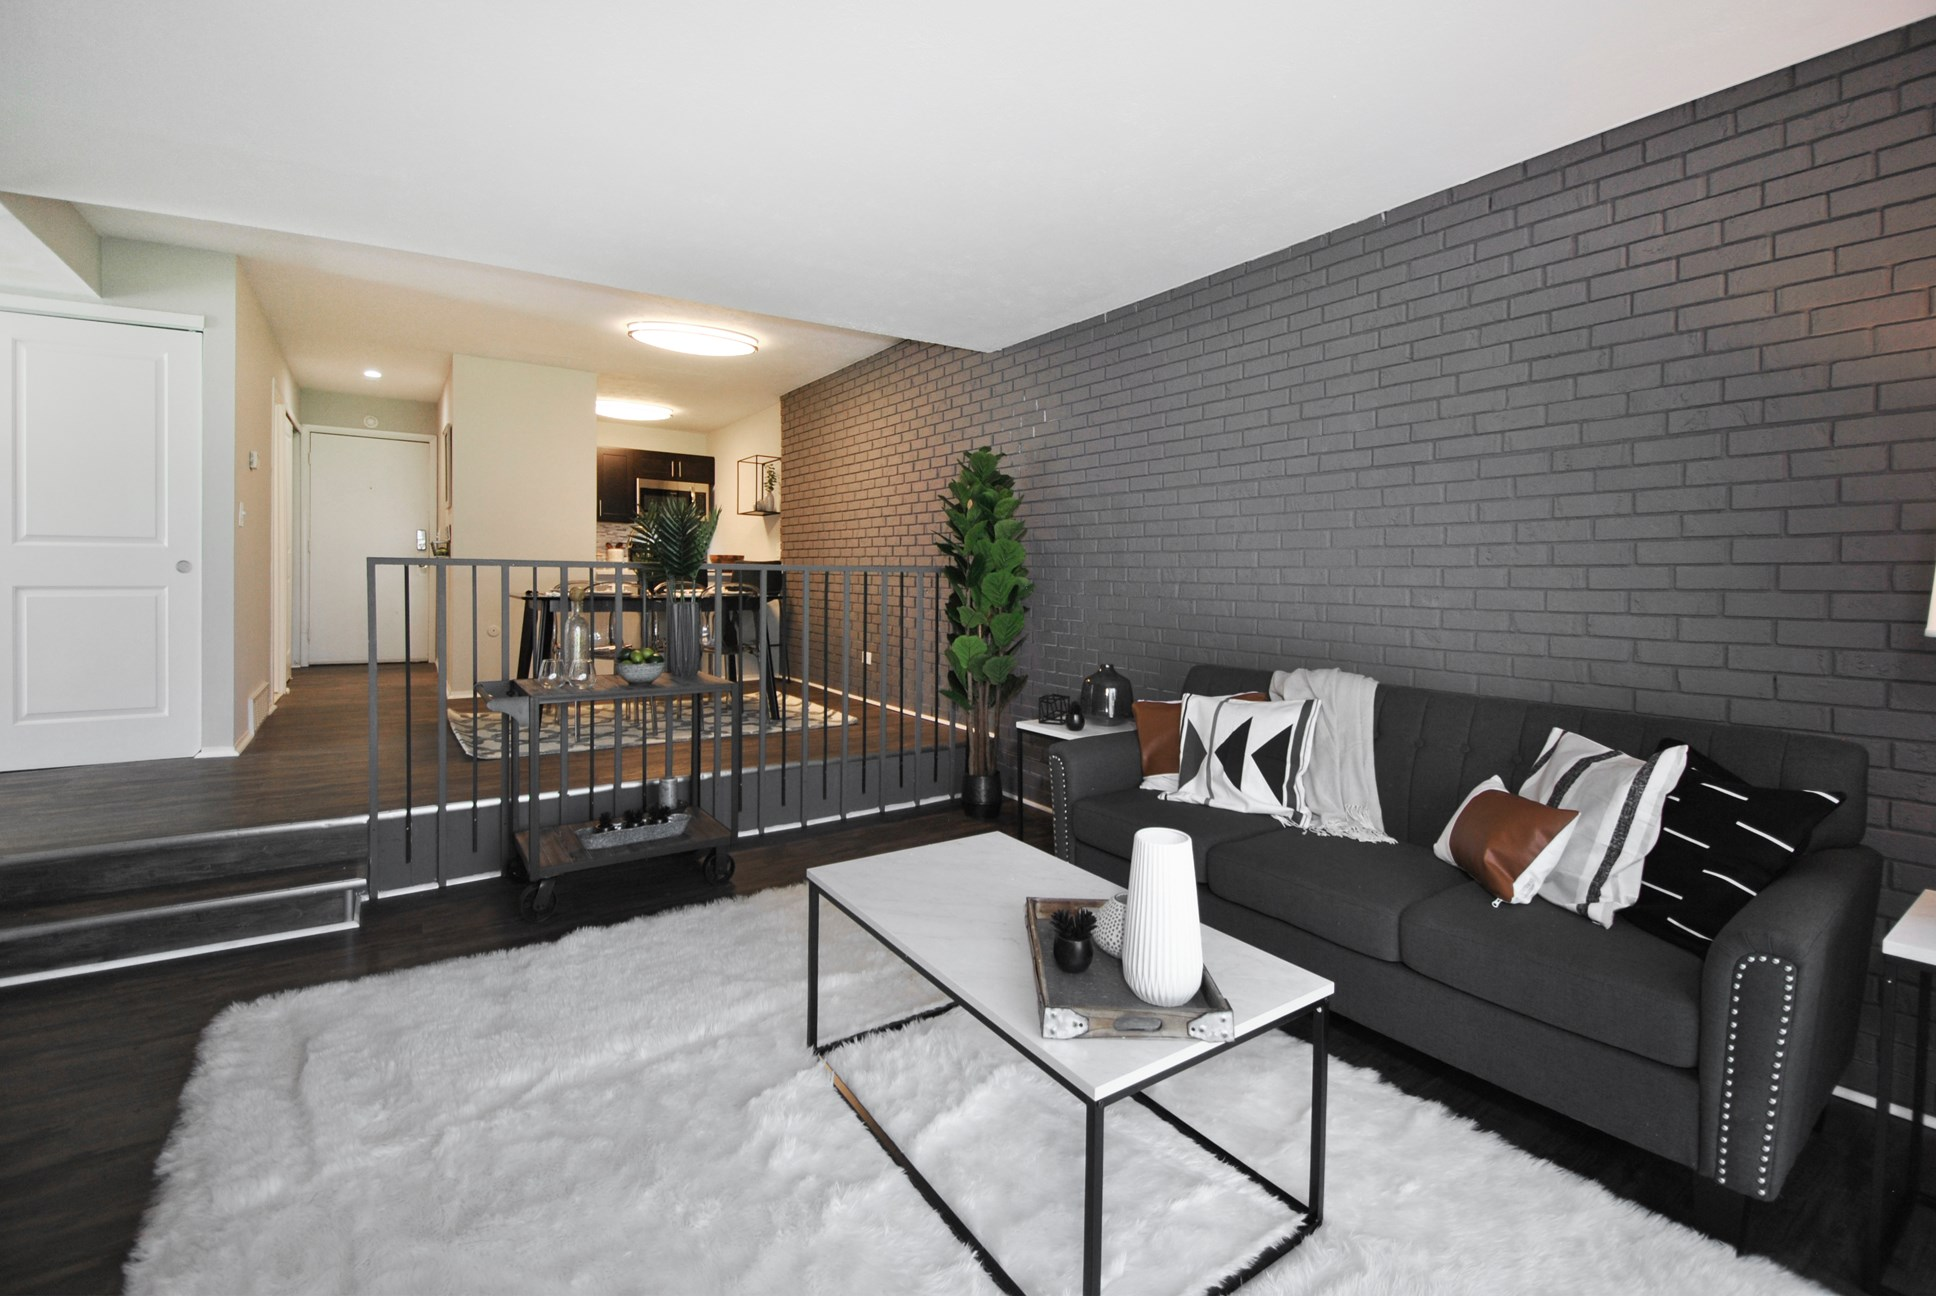 Verona Step-Down Living Area (shown in Renovated style)